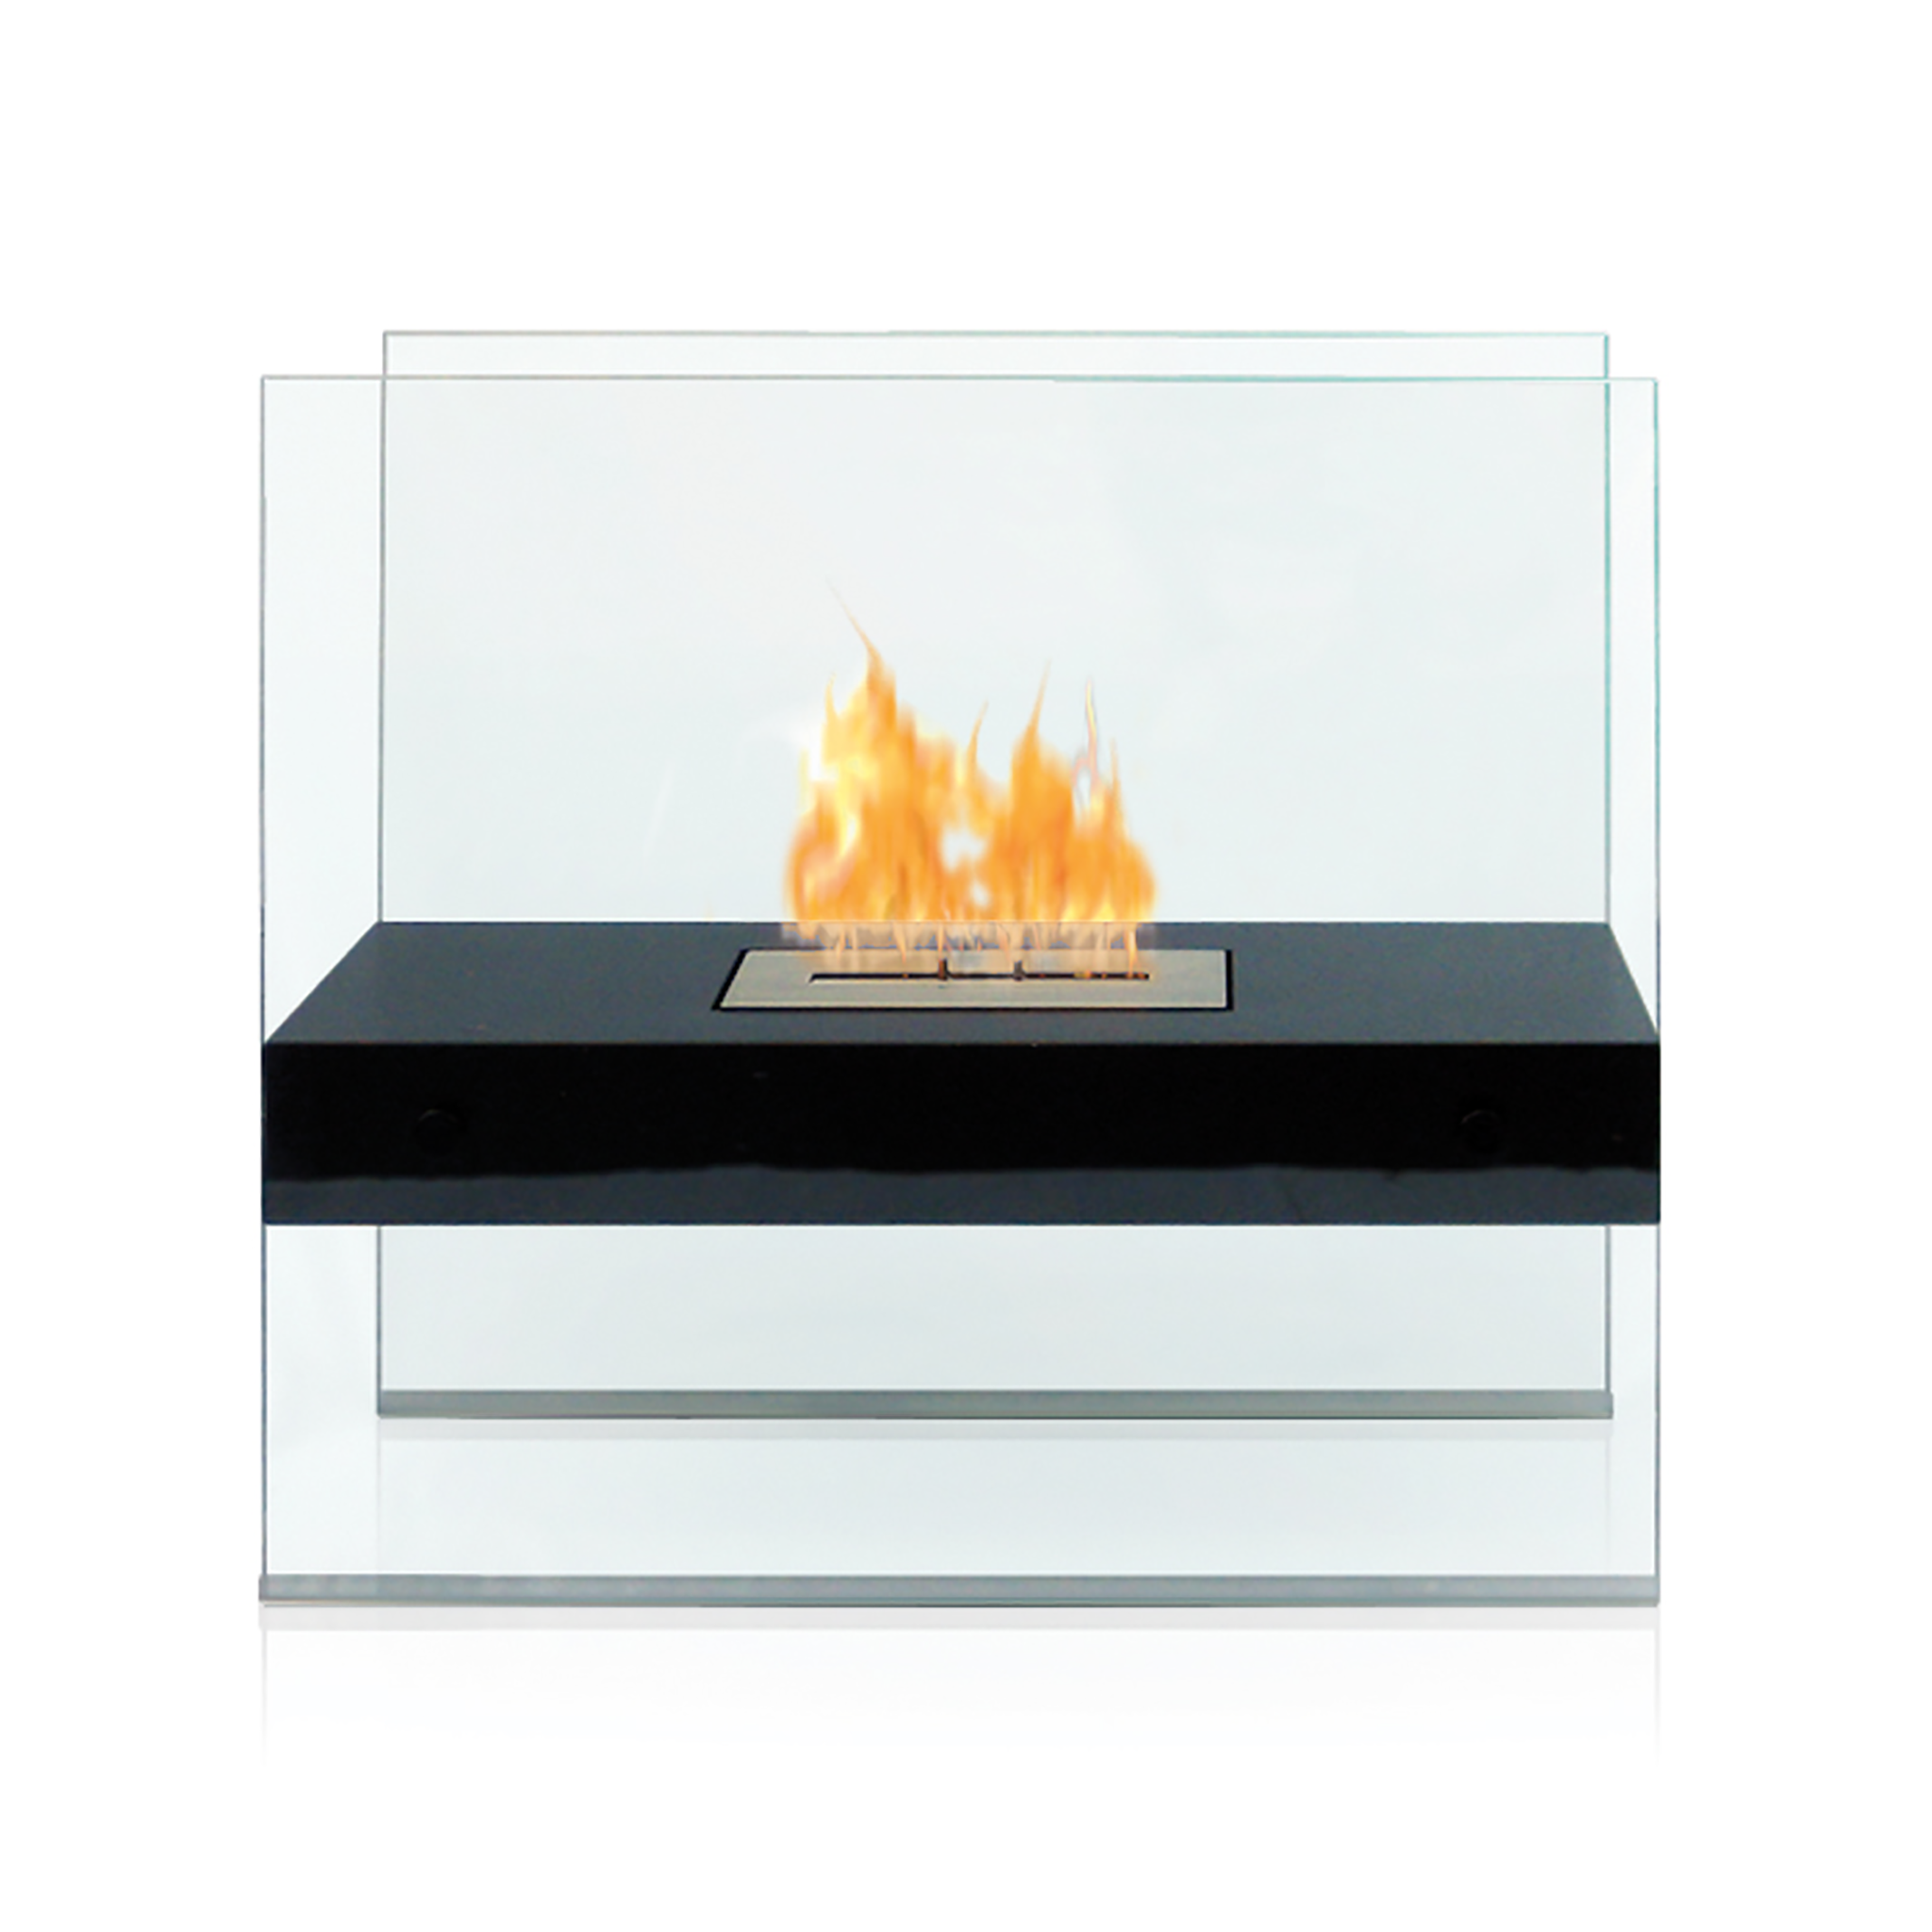 Harlan Grand Electric Fireplace Elegant Daily